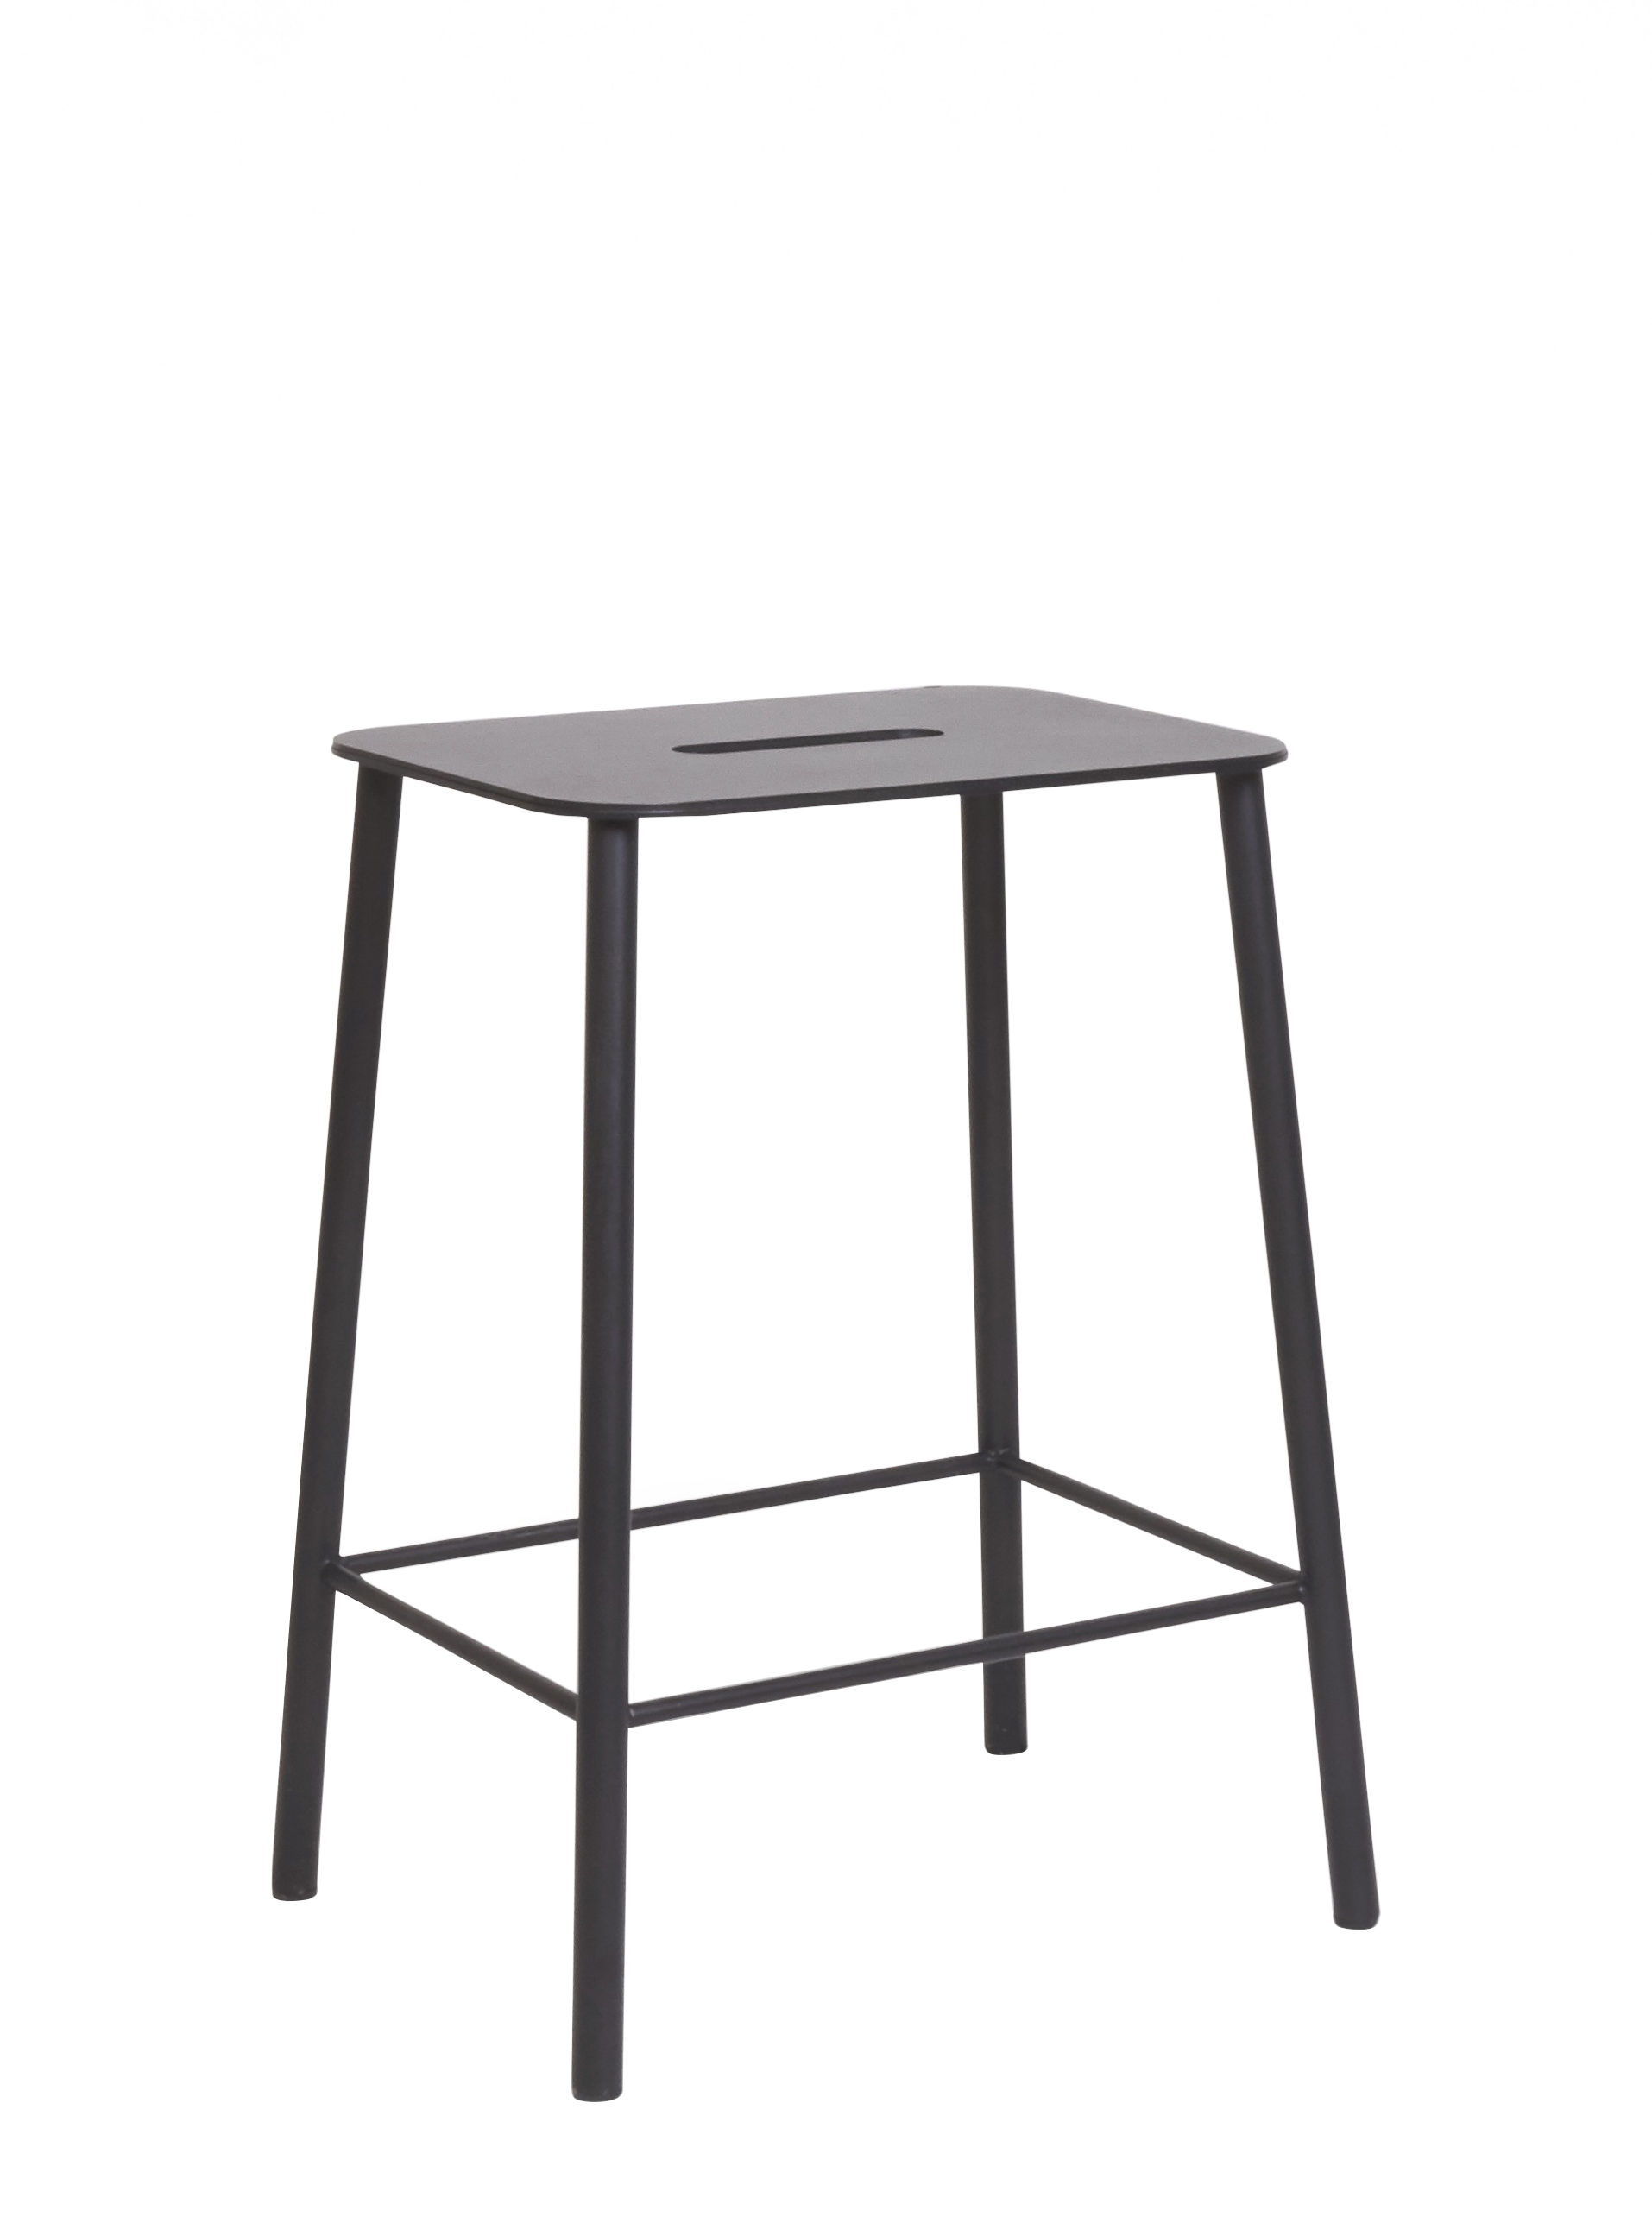 Furniture - Stools - Adam Outdoor Stool - / H 50 cm by Frama  - Black - Epoxy lacquered steel